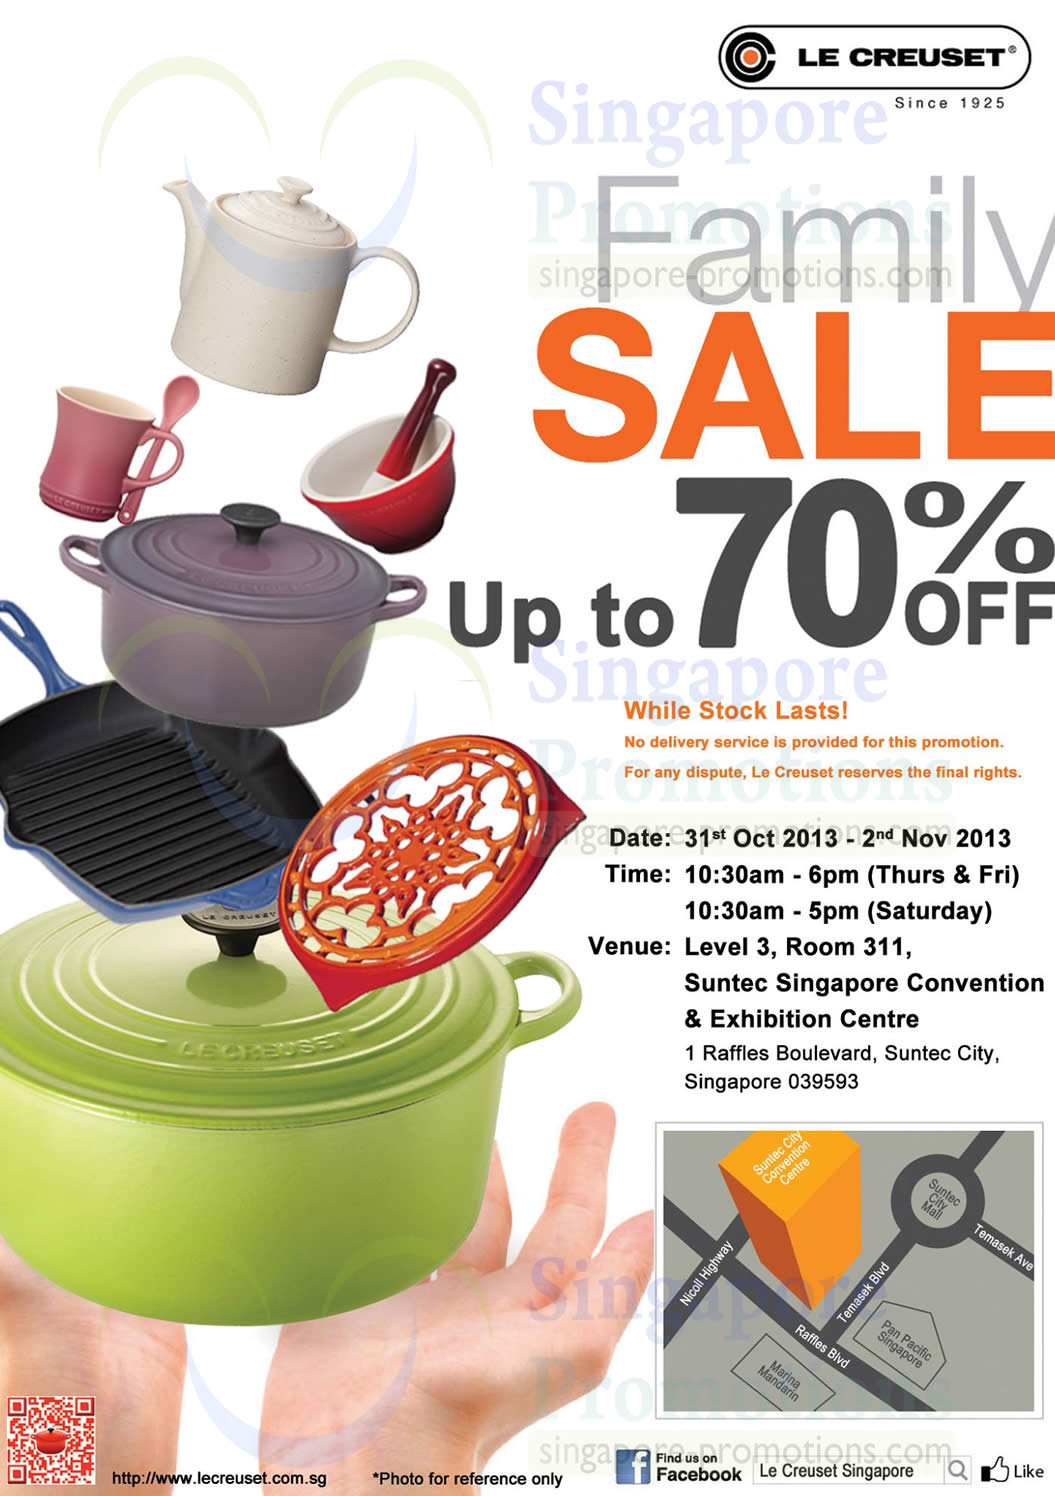 le creuset 28 oct 2013 le creuset family sale up to 70 off suntec 31 oct 2 nov 2013. Black Bedroom Furniture Sets. Home Design Ideas